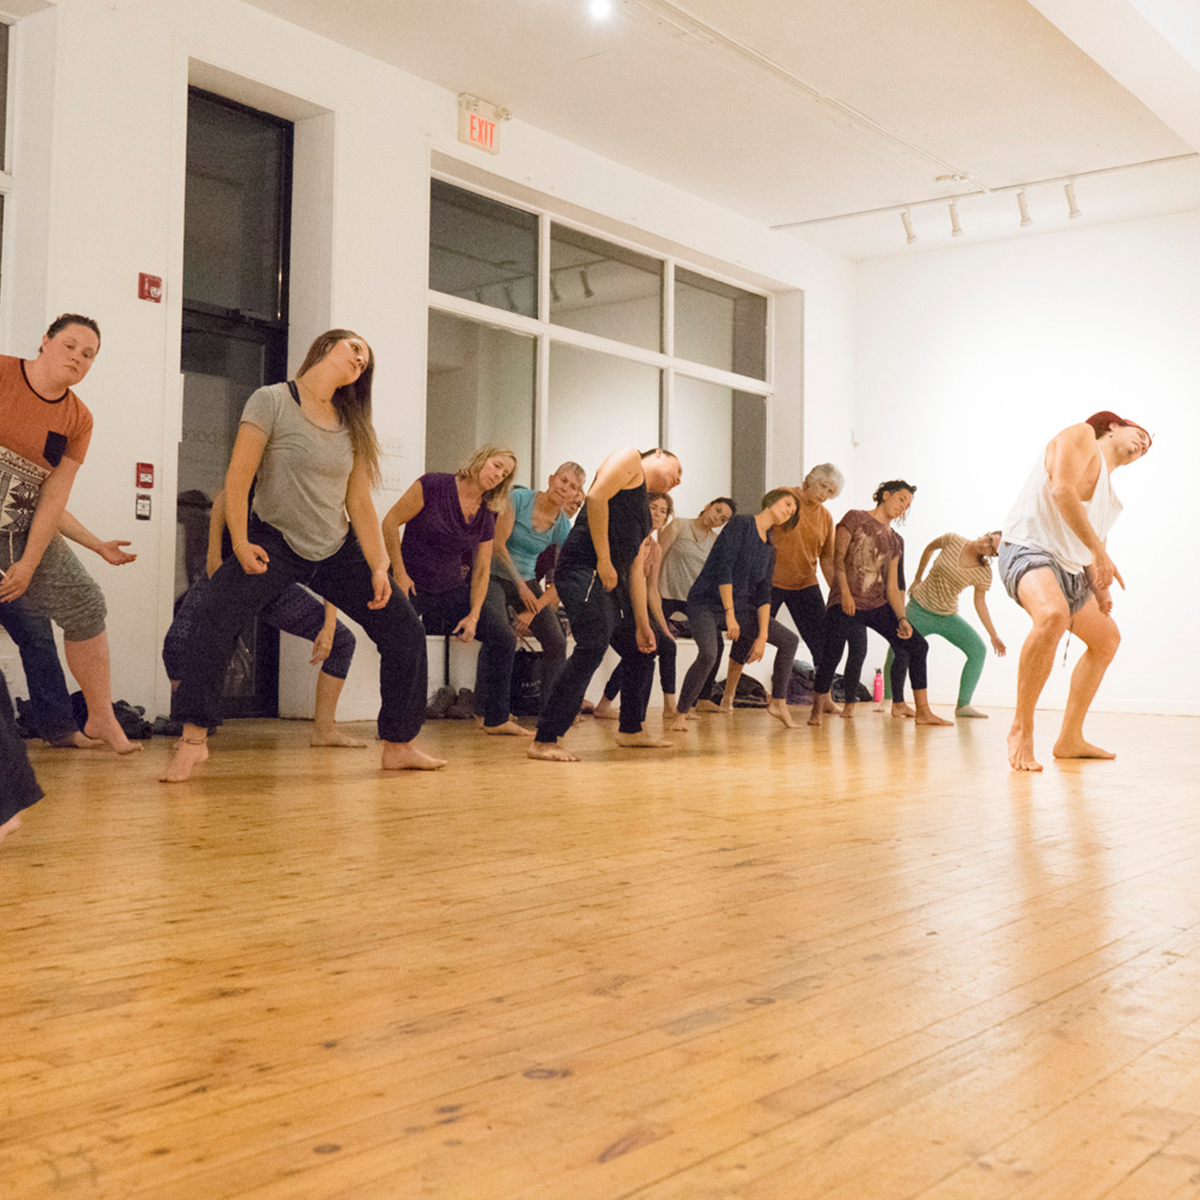 A group of people doing a movement exerciser together.